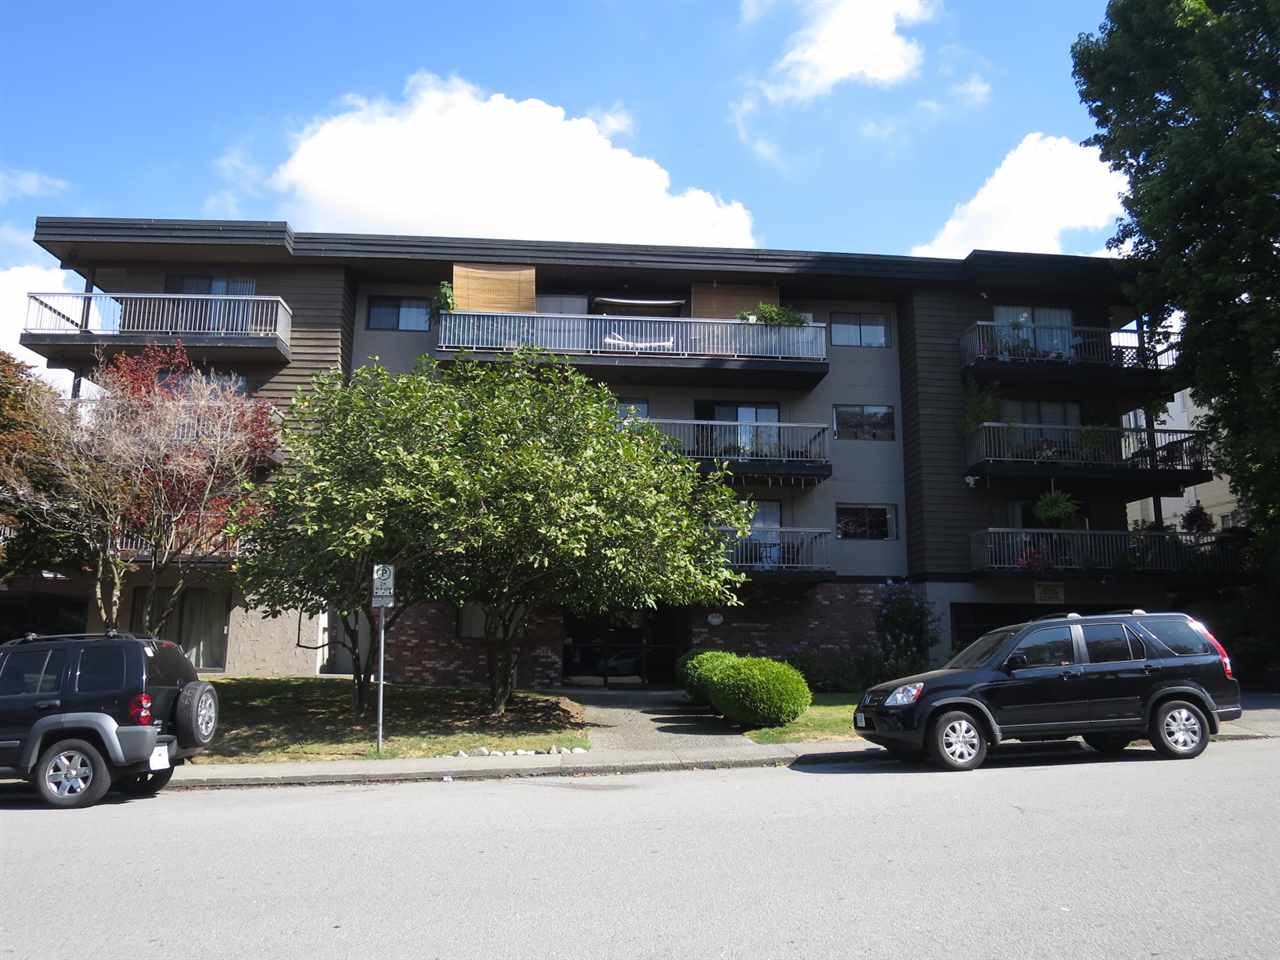 "Main Photo: 102 330 W 2 Street in North Vancouver: Lower Lonsdale Condo for sale in ""Lorraine Place"" : MLS® # R2206253"